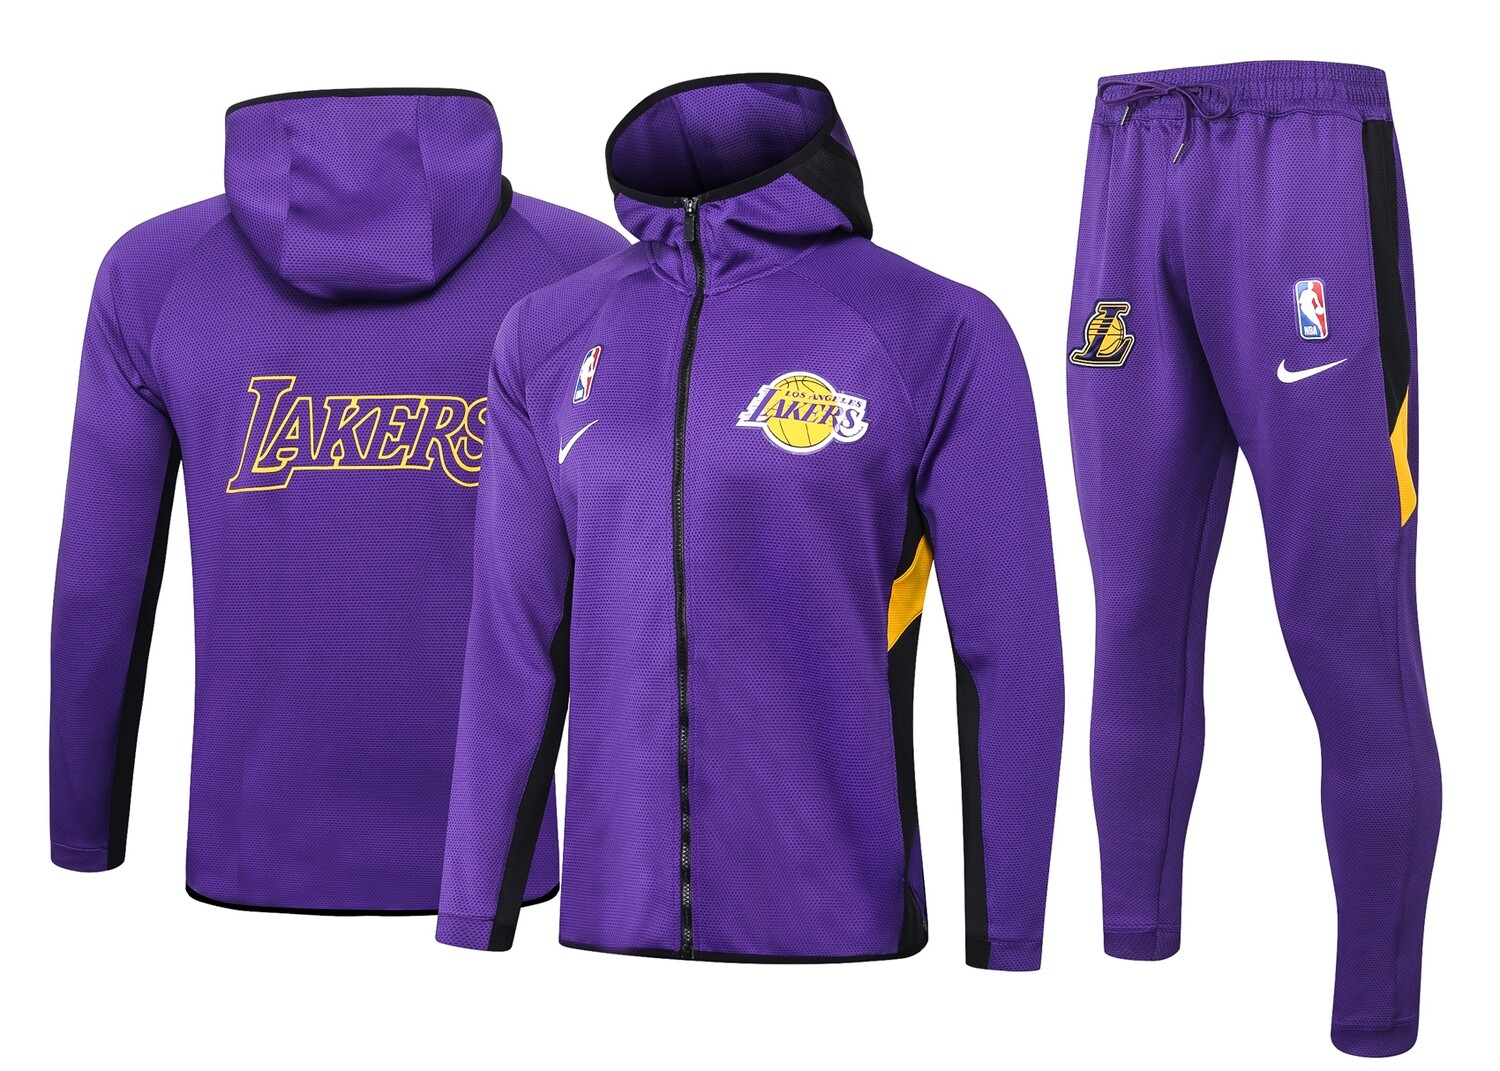 Agasalho do Los Angeles Lakers